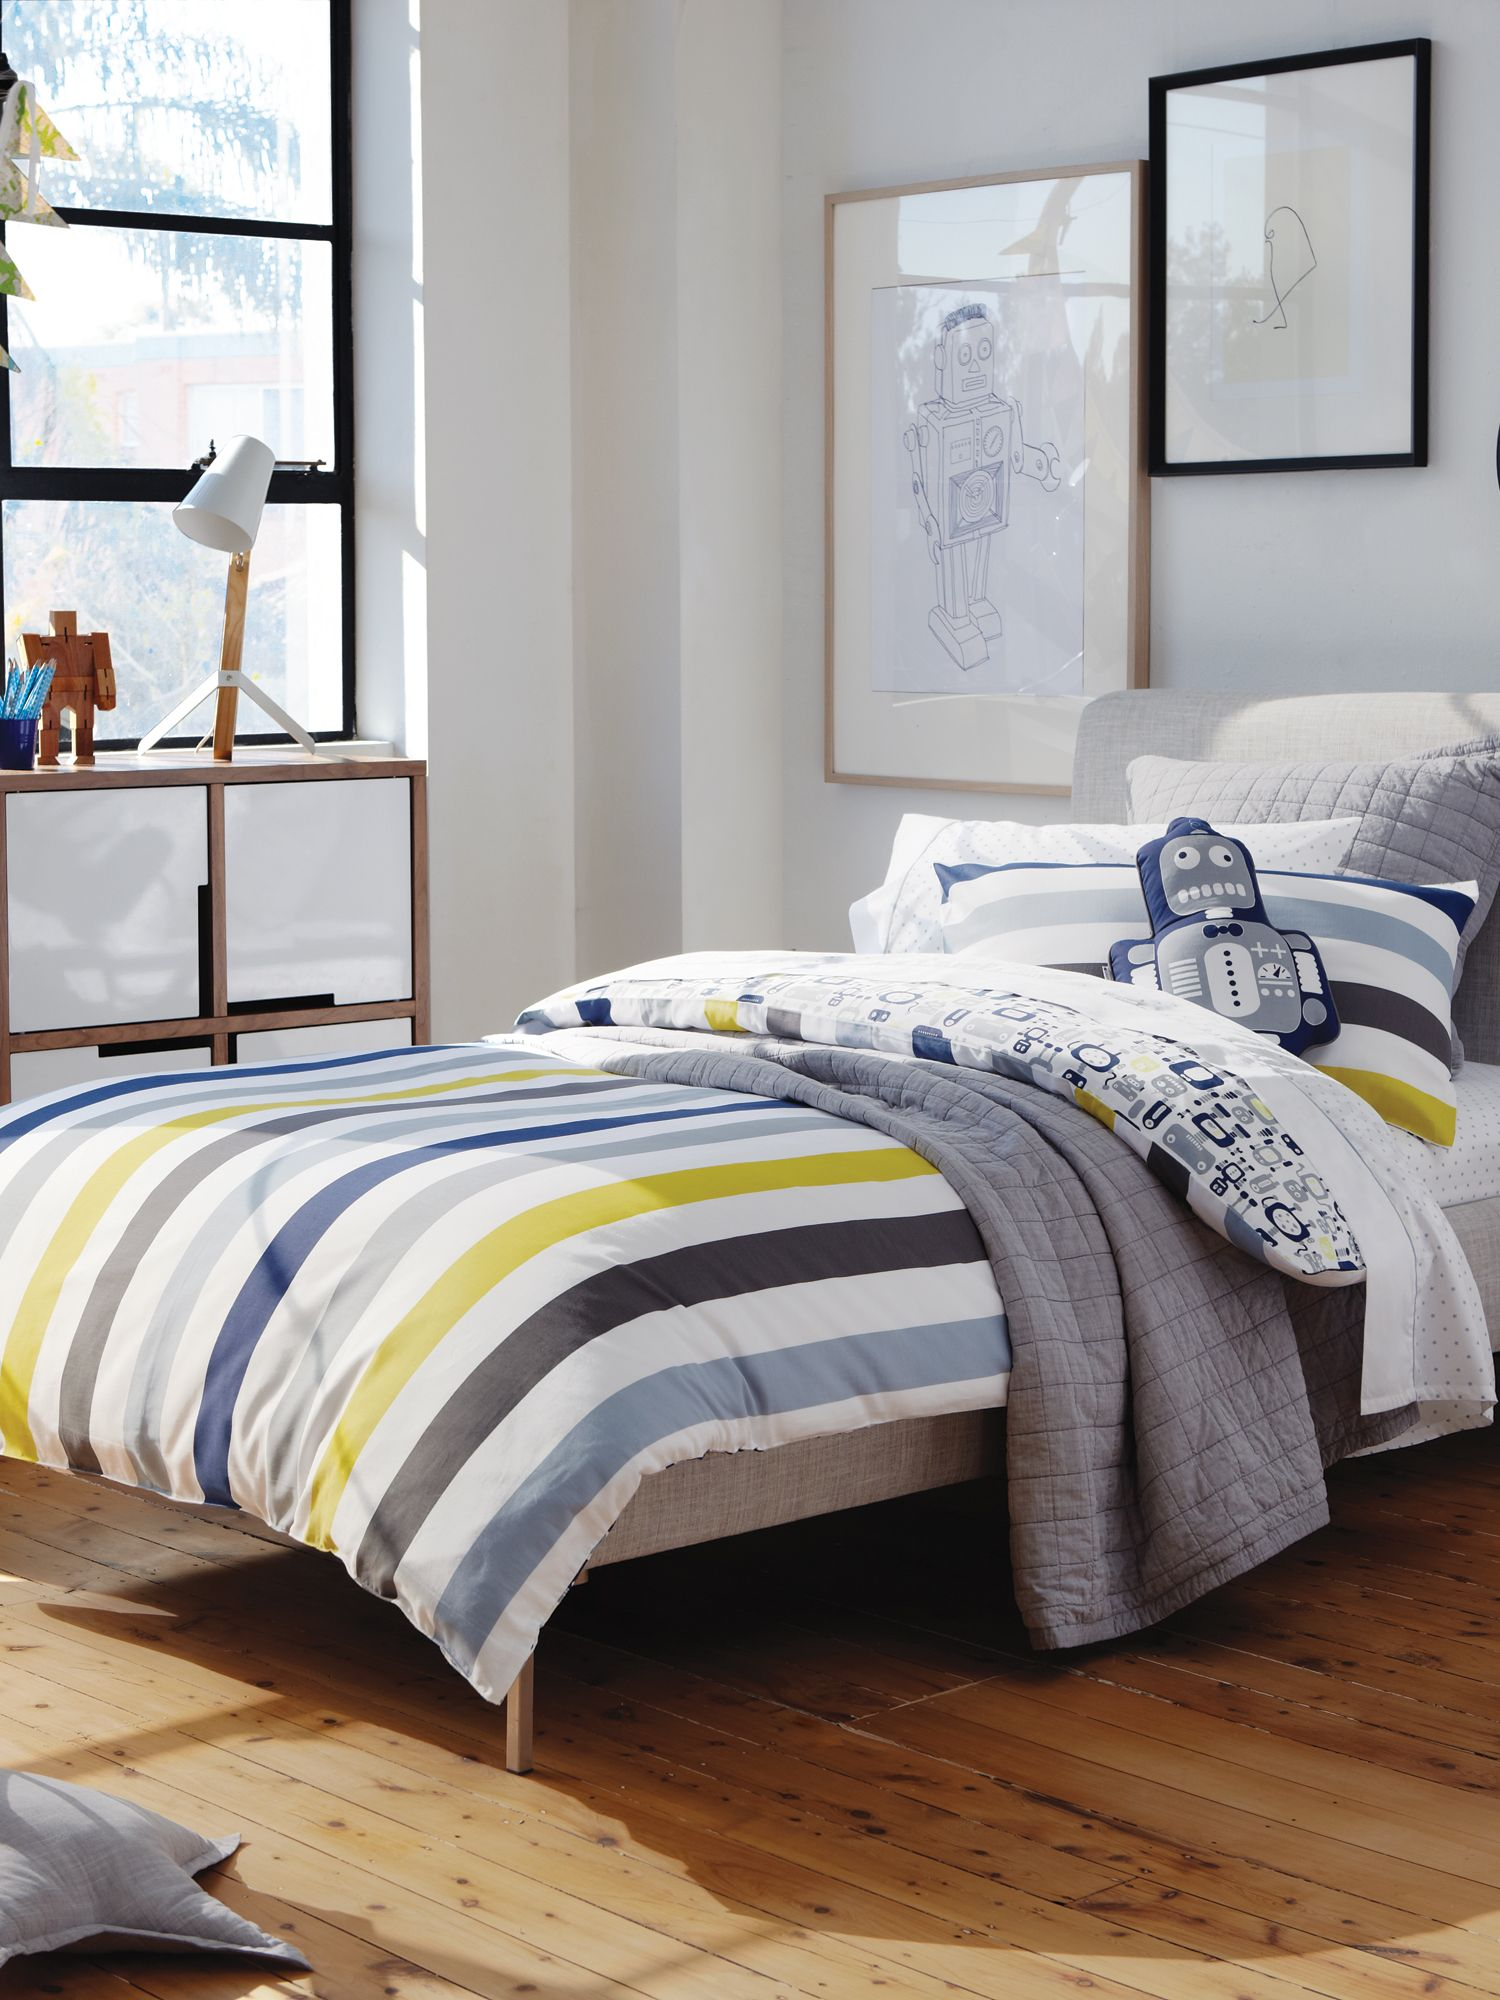 Rhys bed linen in chatreuse